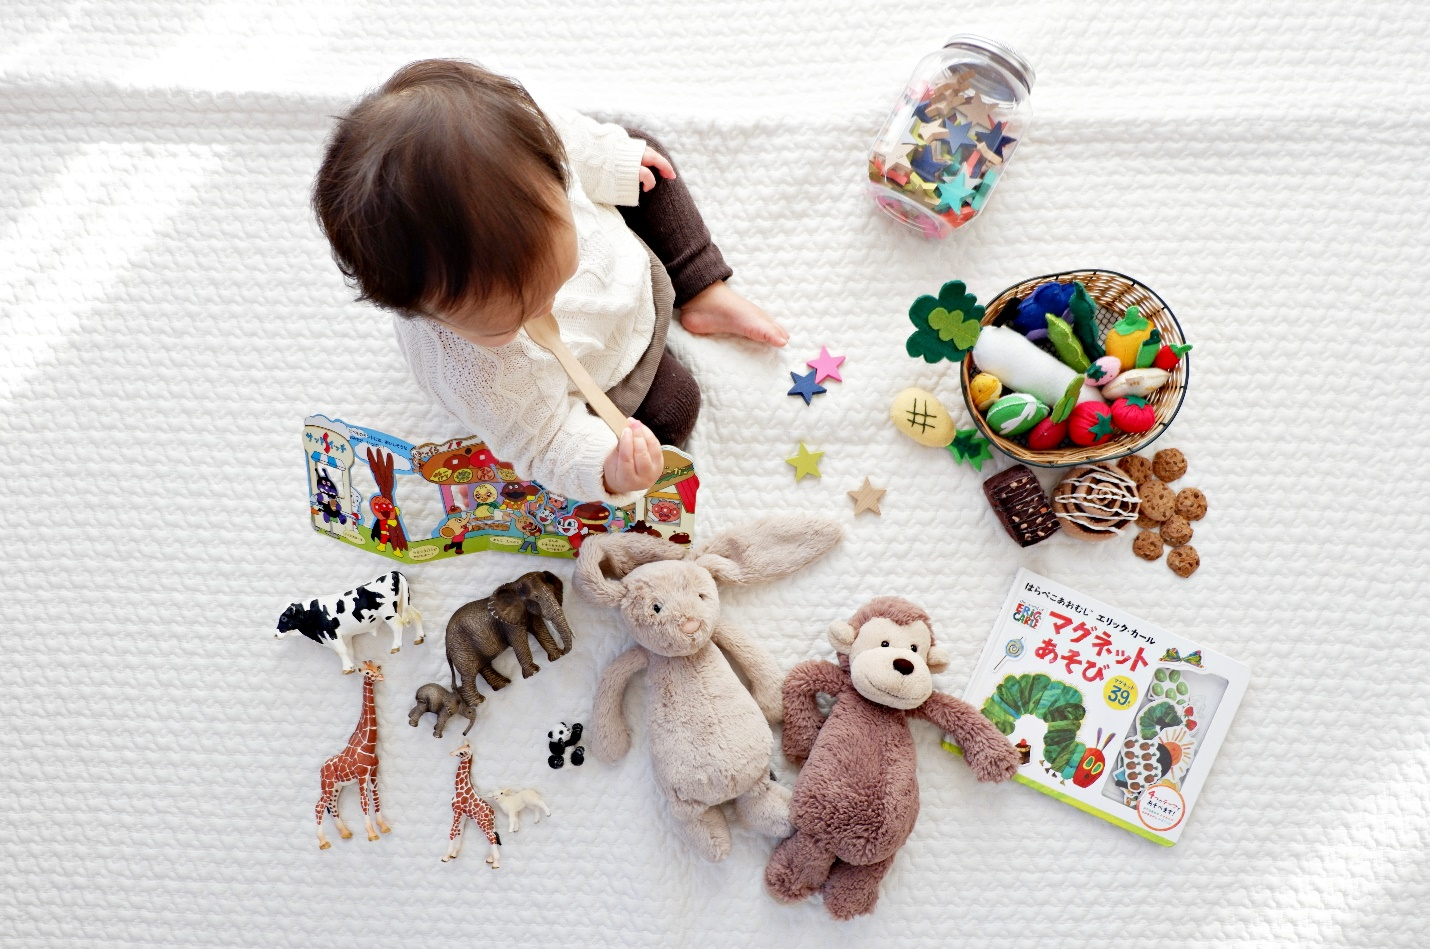 baby surrounded by a variety of toys